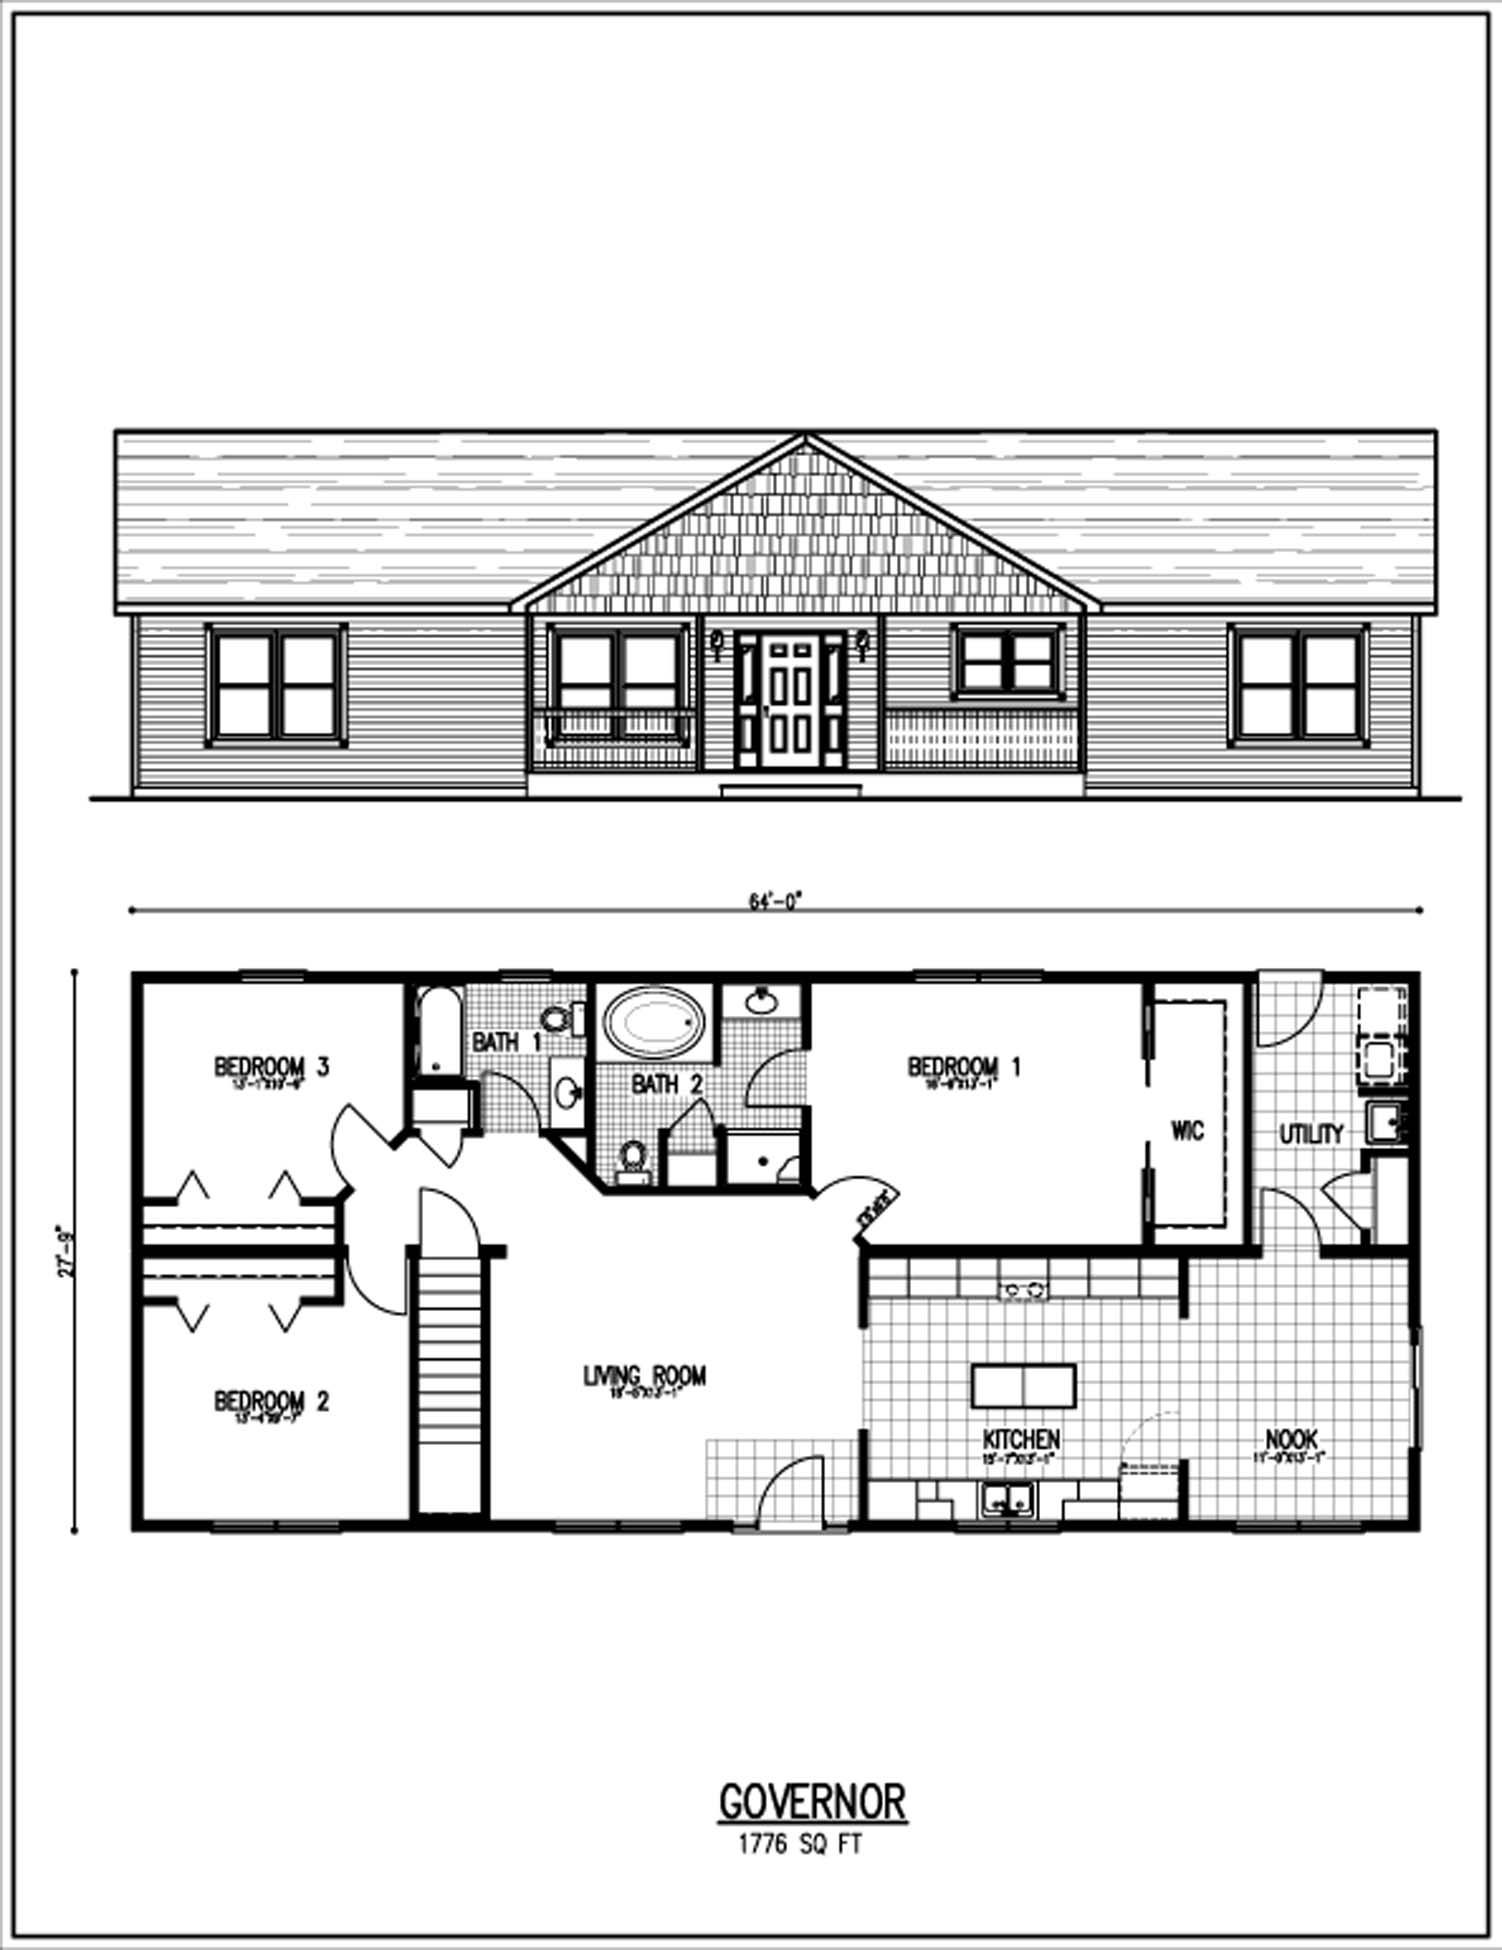 Ranch Style House Plans | Thompson Hill Homes, Inc. - Floor ... on basement floor plans, split level floor plans, large family floor plans, mobile home floor plans, ranch house plans, duplex floor plans, triplex floor plans, bungalow floor plans, ranch with walkout basement plans, four plex floor plans, split foyer floor plans,